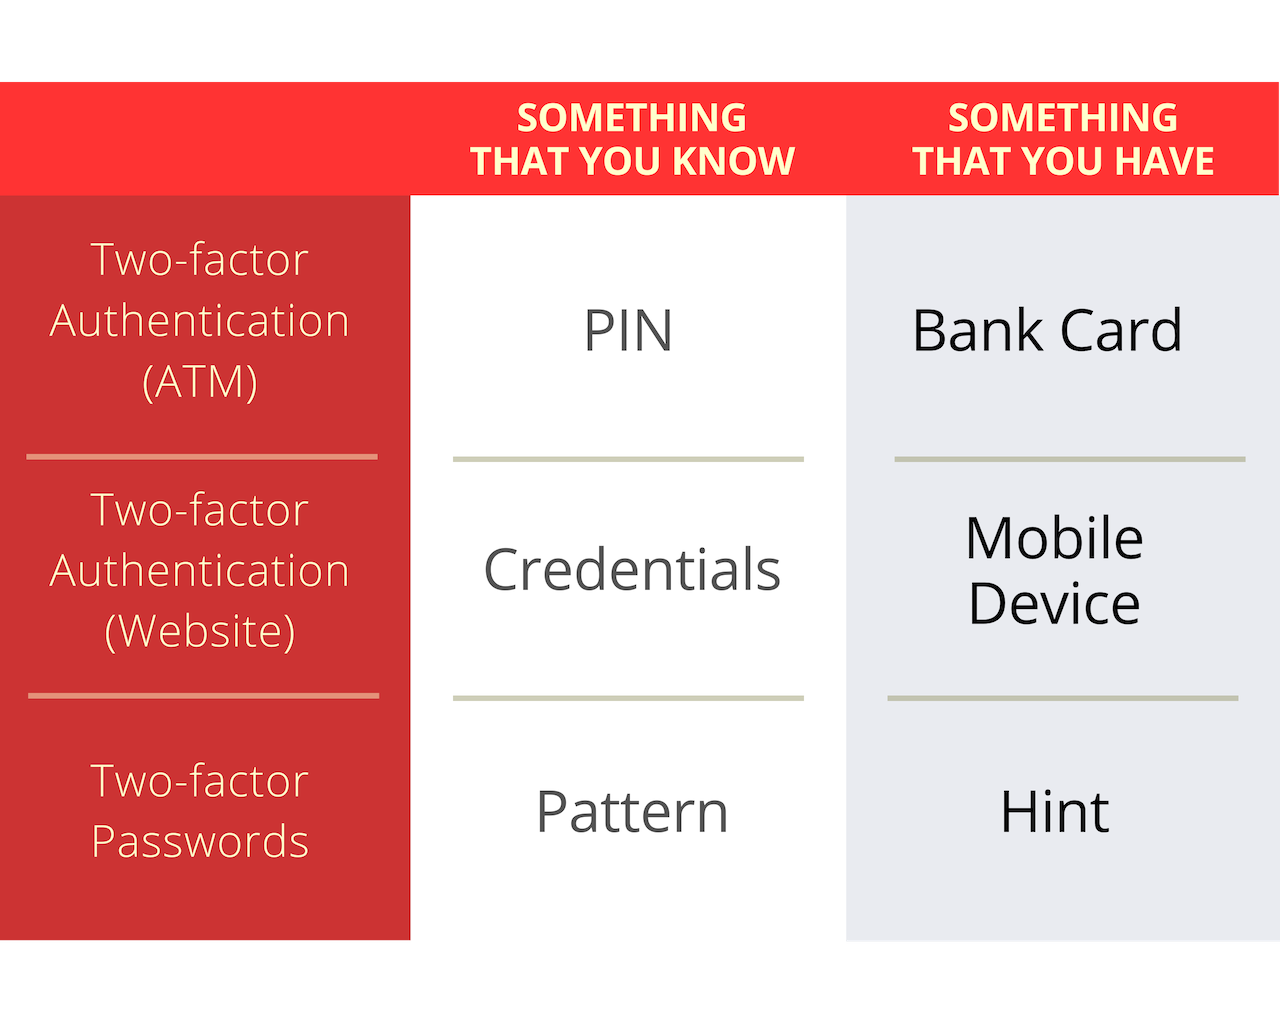 Two-factor authentication versus two-factor passwords